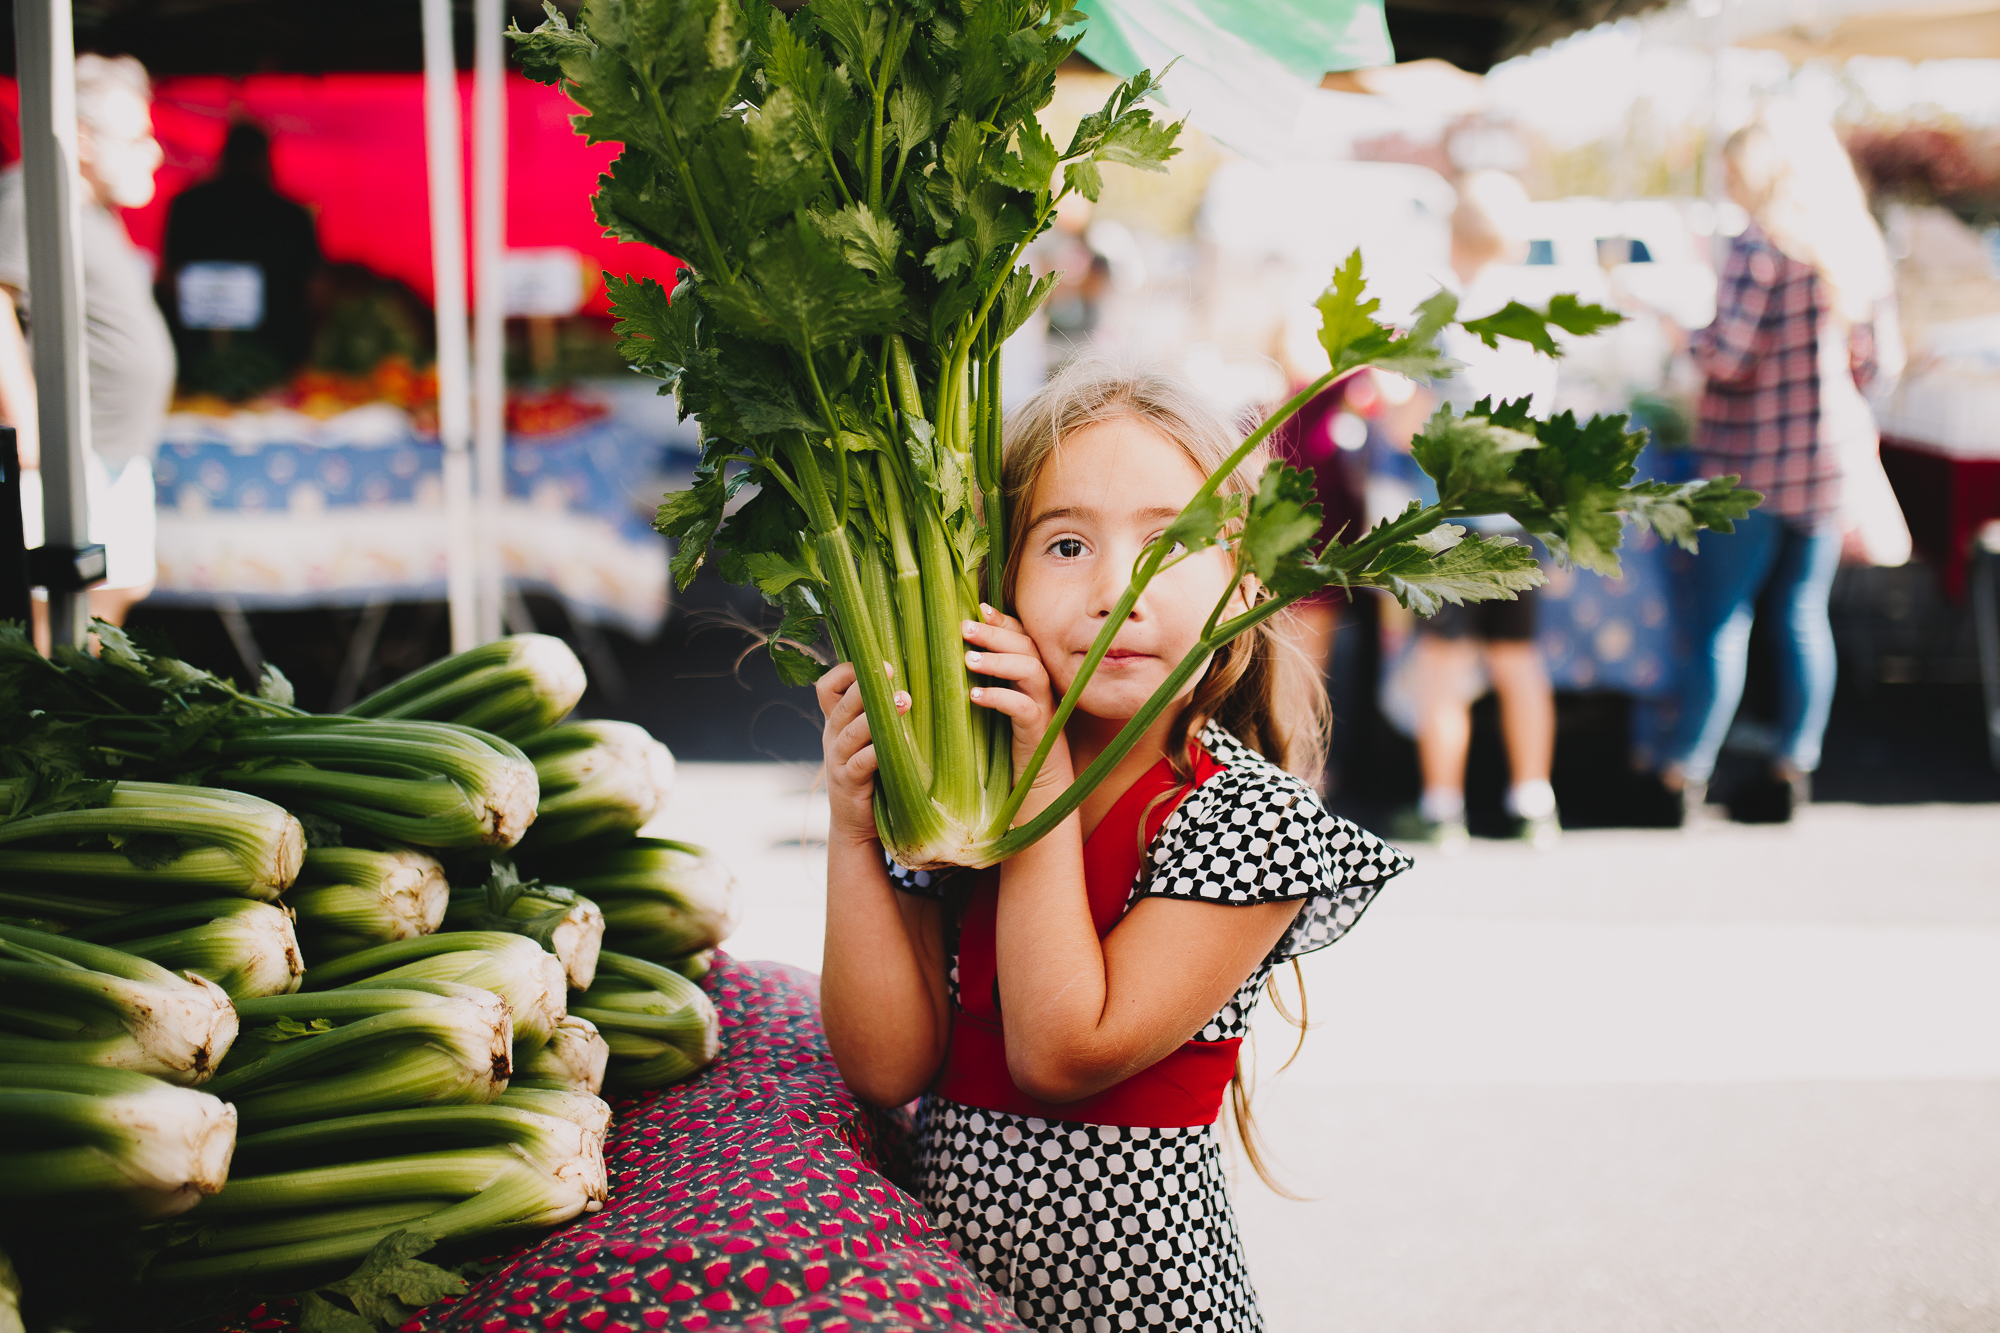 Archer_Inspired_Photography_Mother_Daughters_Farmers_Market_Morgan_Hill_California_Beyond_the_wanderlust-22.jpg